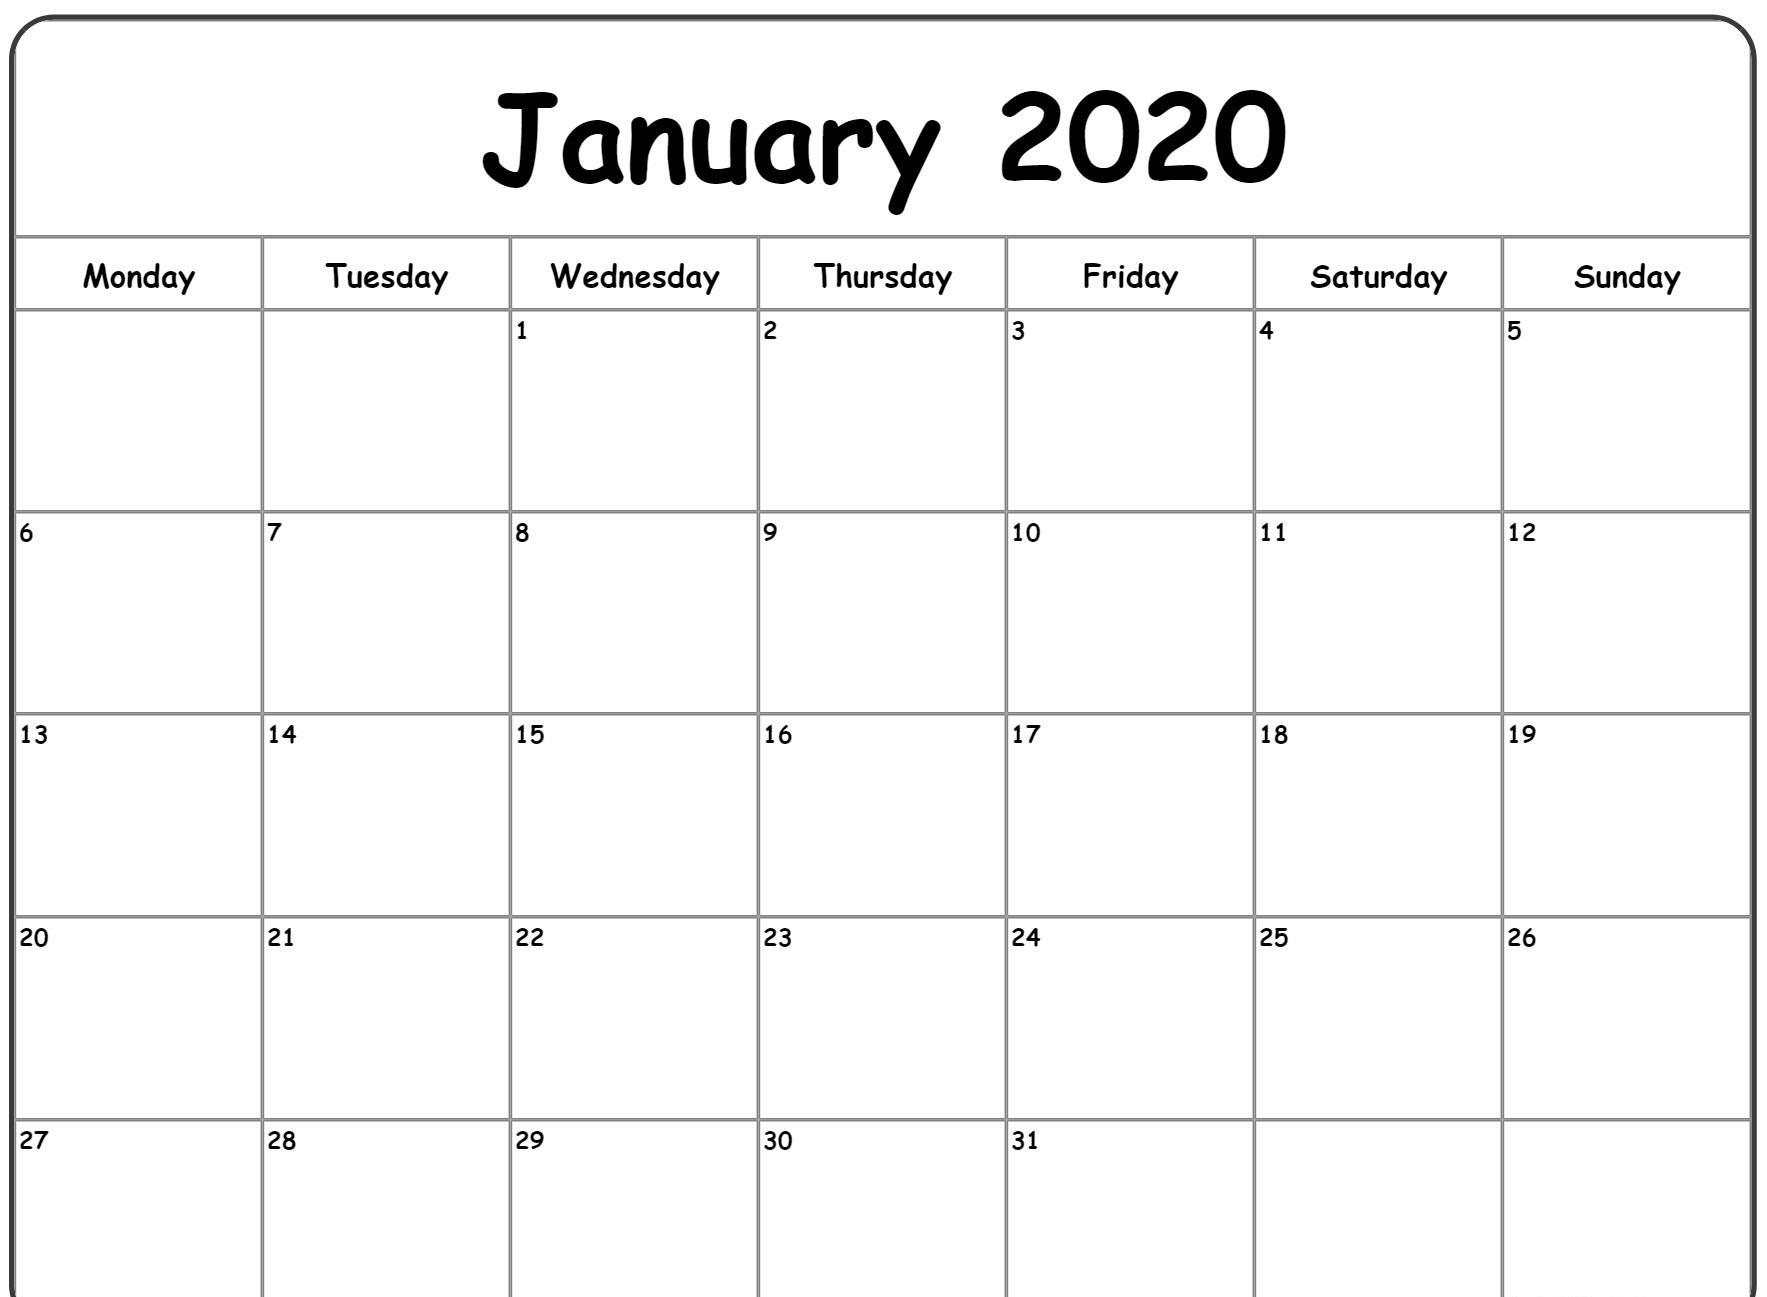 Free Blank January Calendar 2020 Printable Template within Calendar 2020 January